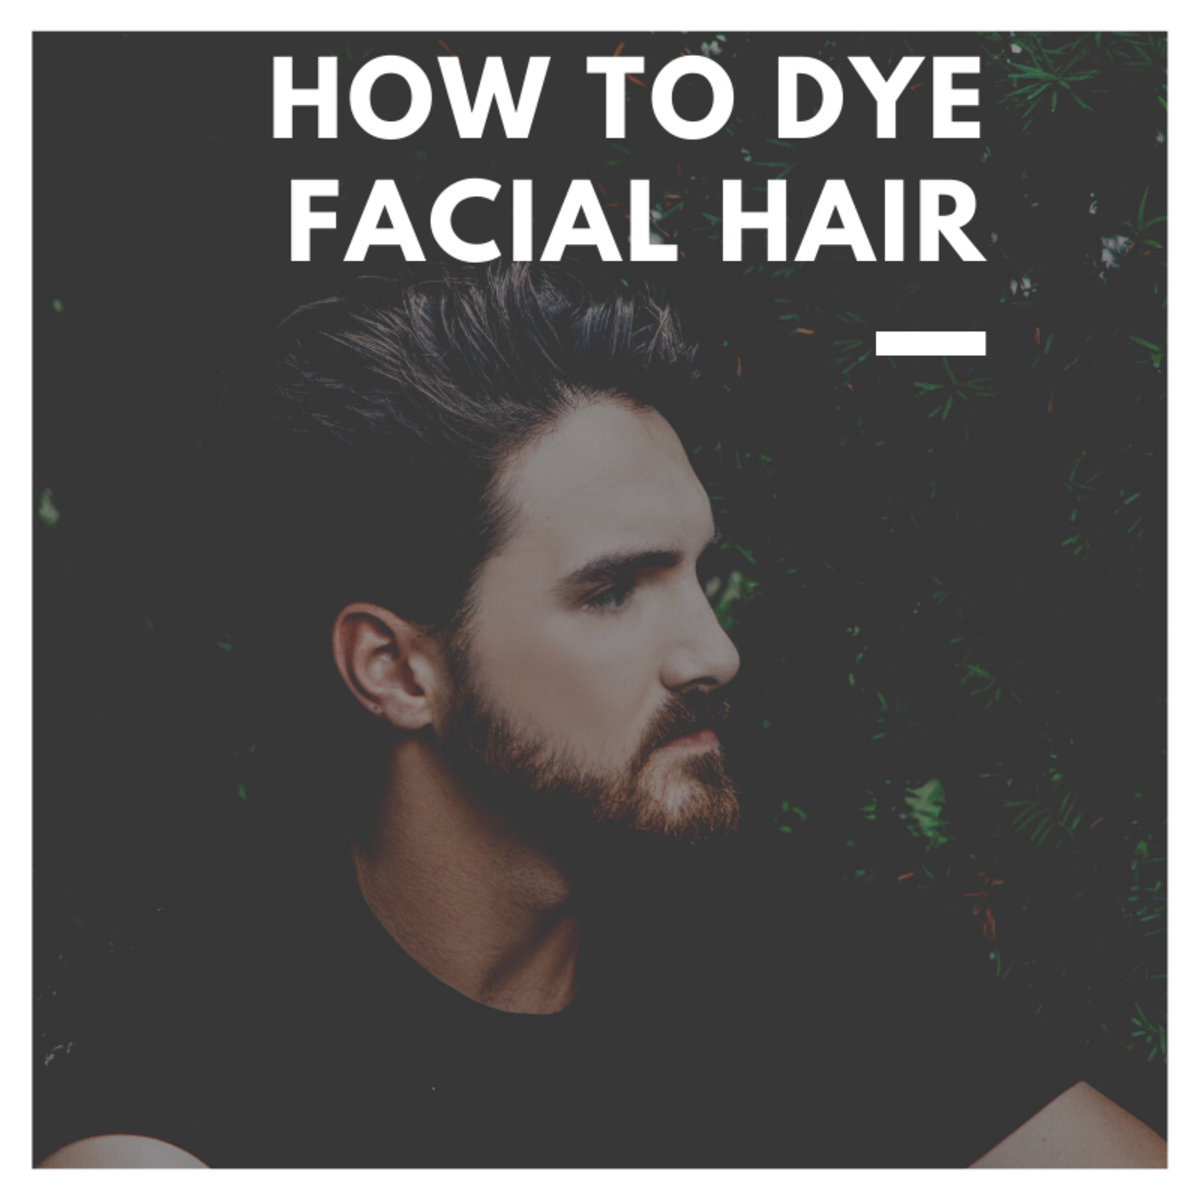 How to Dye Facial Hair